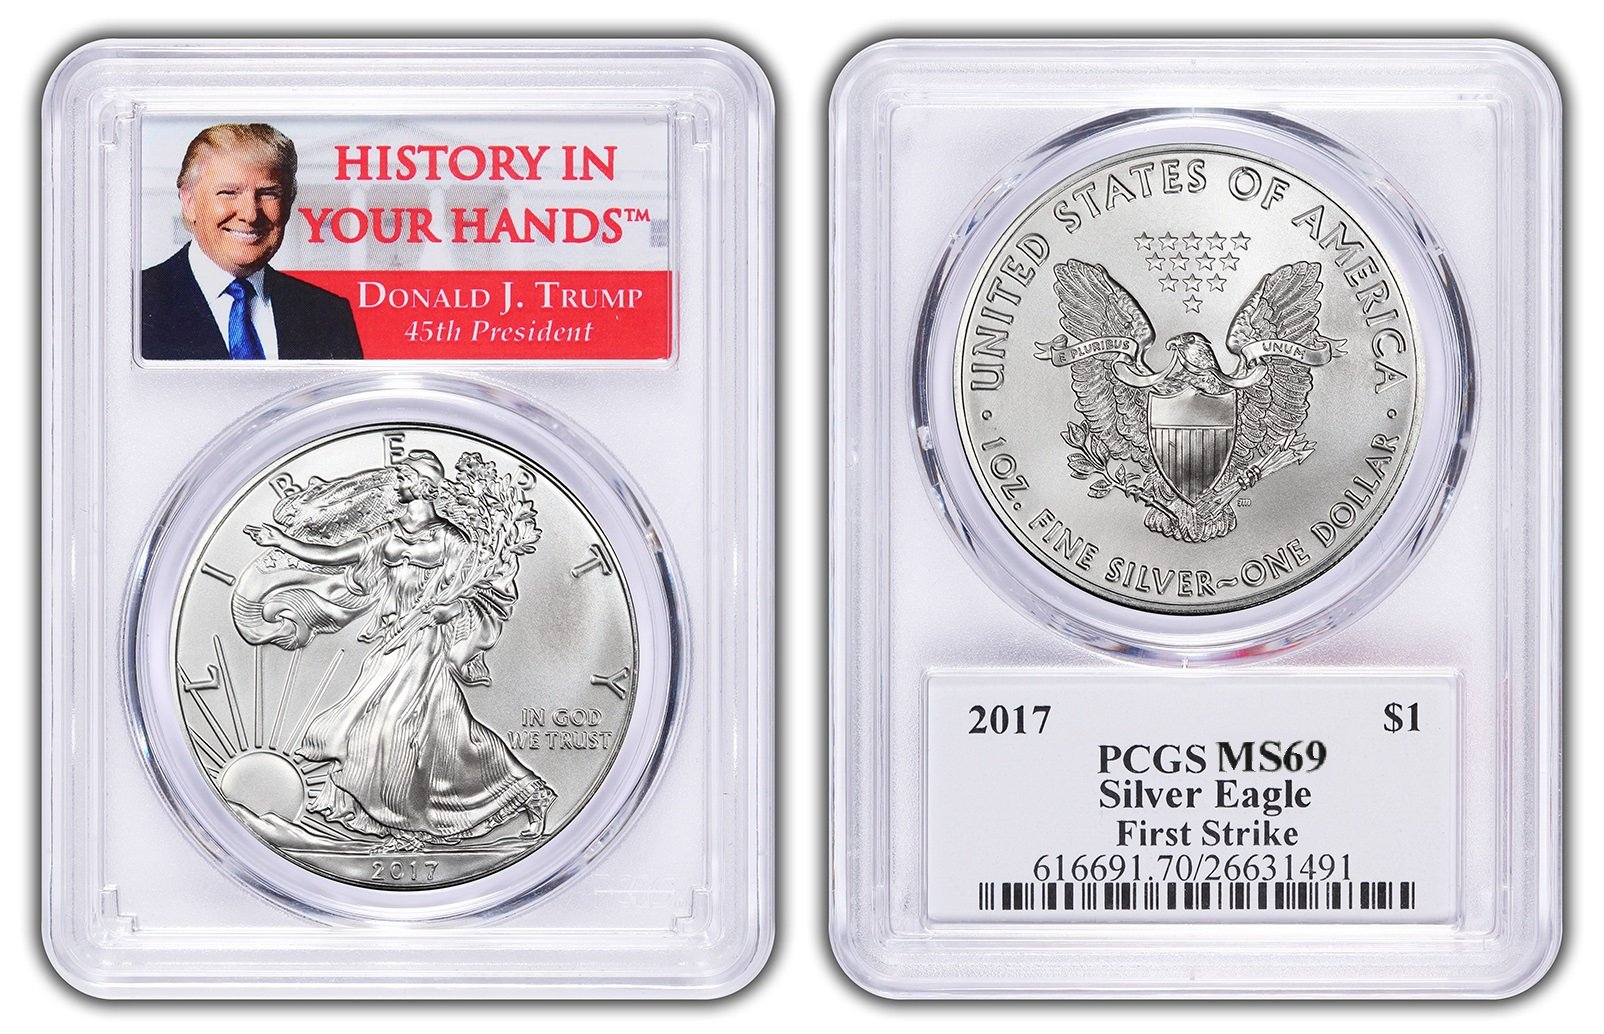 Silver Eagle Donald Trump